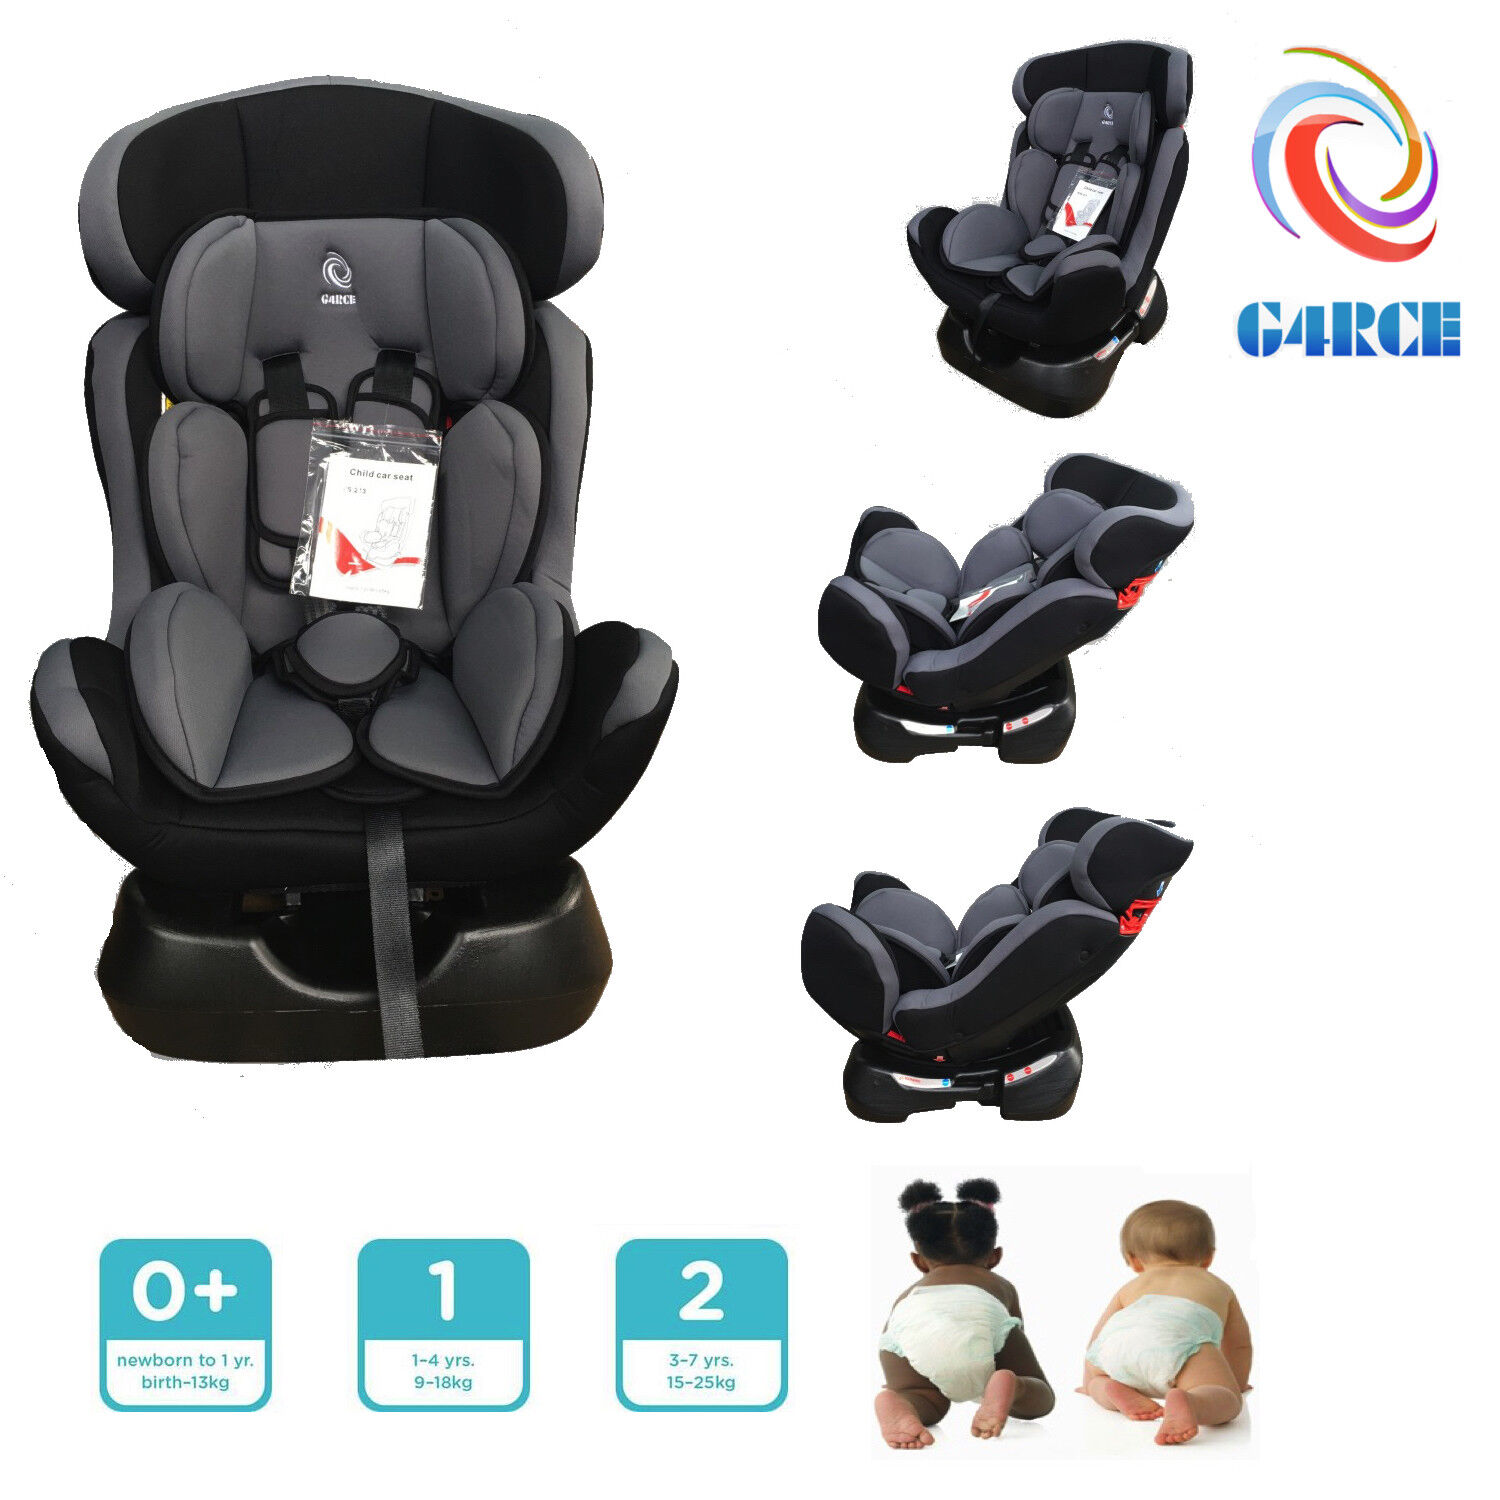 Baby Car Seat Uk Details About Kids Car Seat Group 1 2 3 In1 Convertible Baby Child Safety Booster Seat Uk